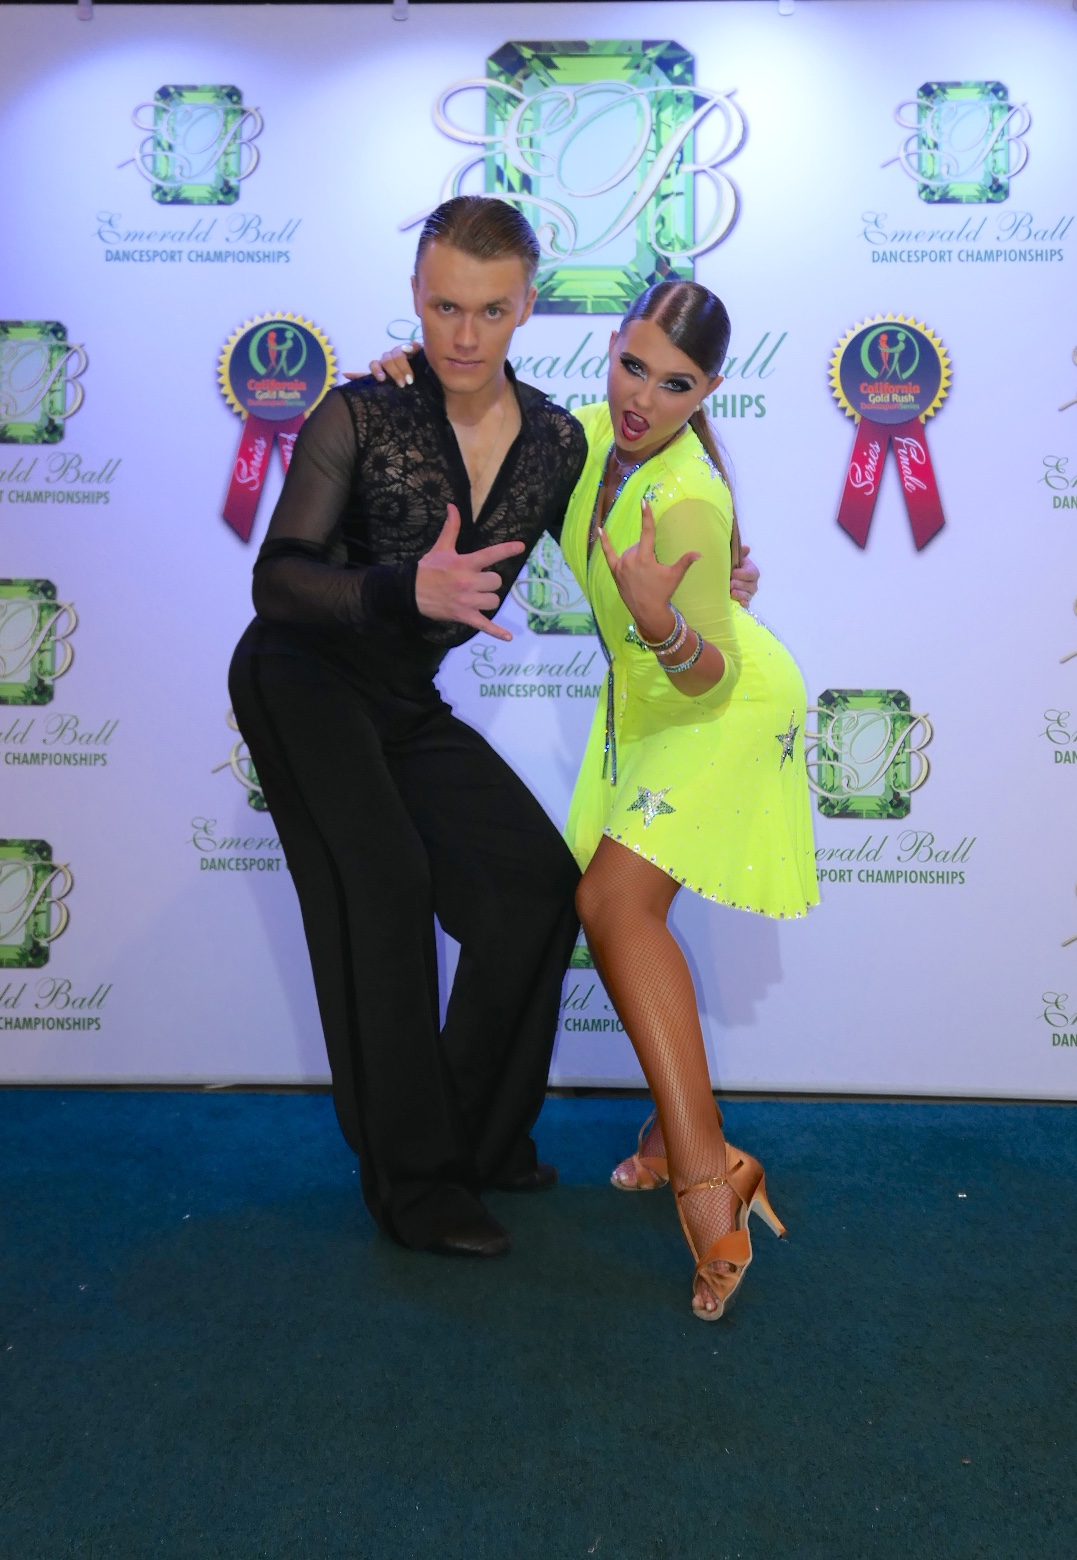 ivan and katya @emeraldball.jpg